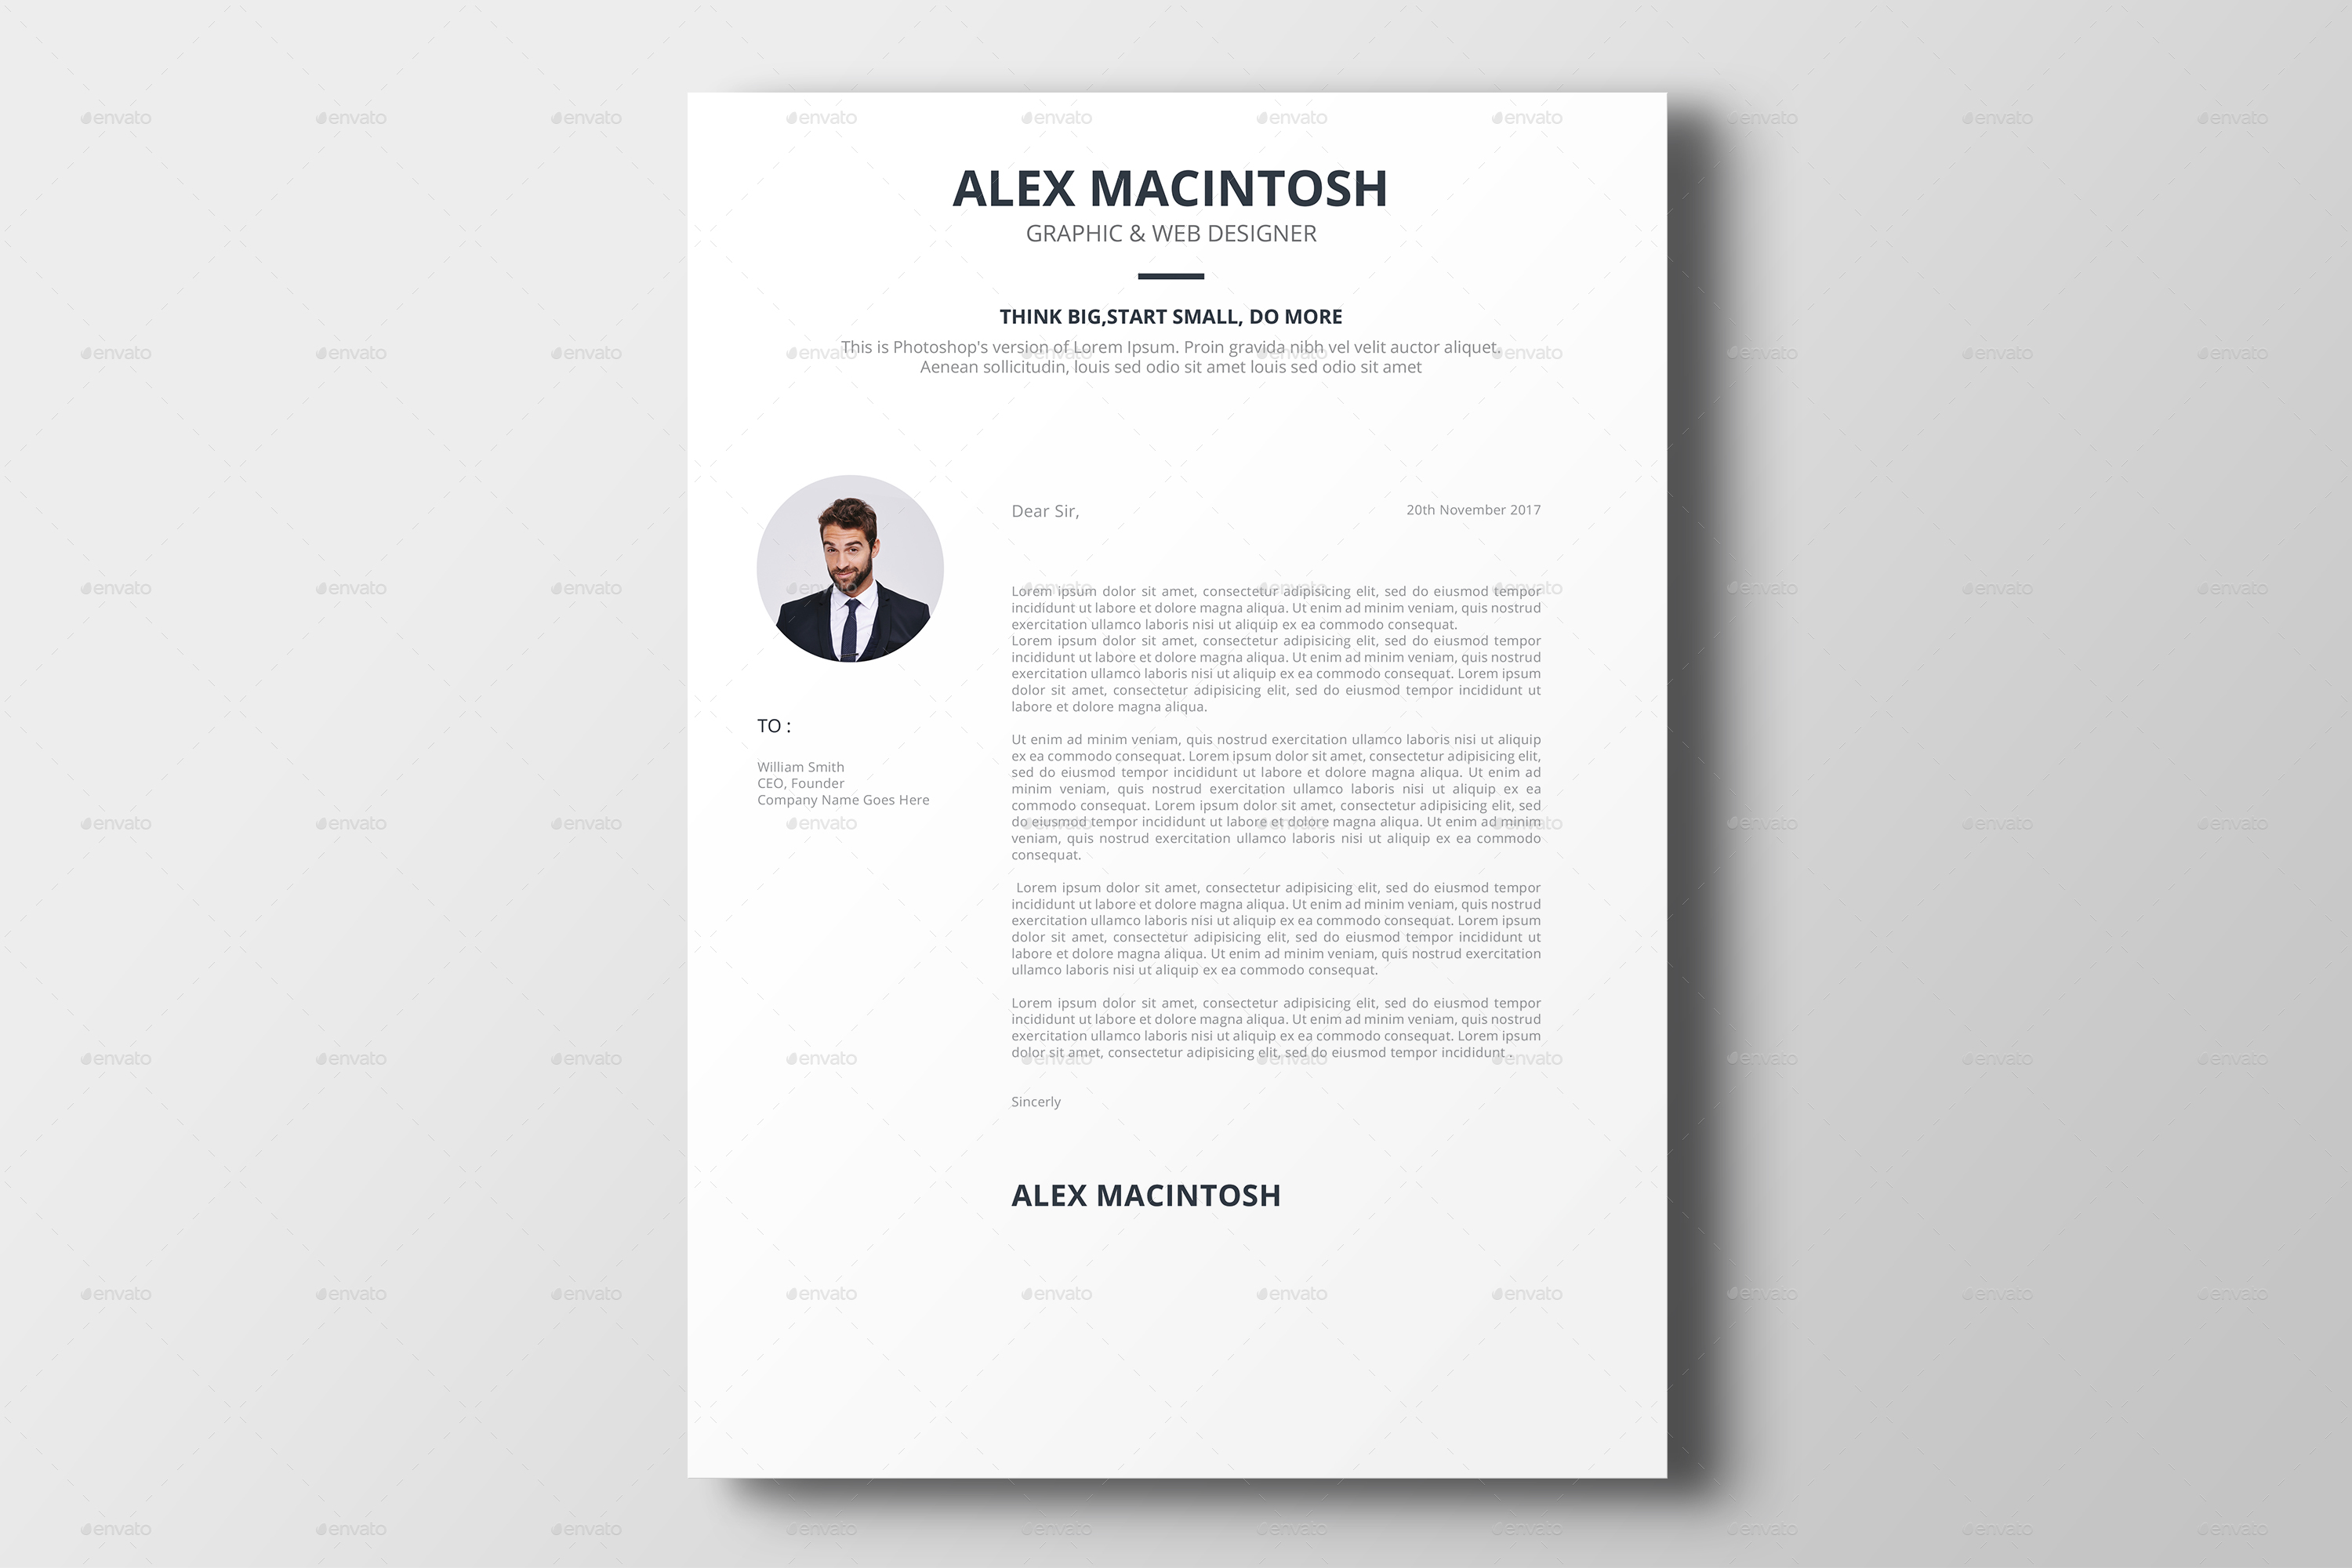 Odesk cover letter for graphics designing job resume template cv template cover letter application advice ms word resume design cv design instant download thecheapjerseys Images